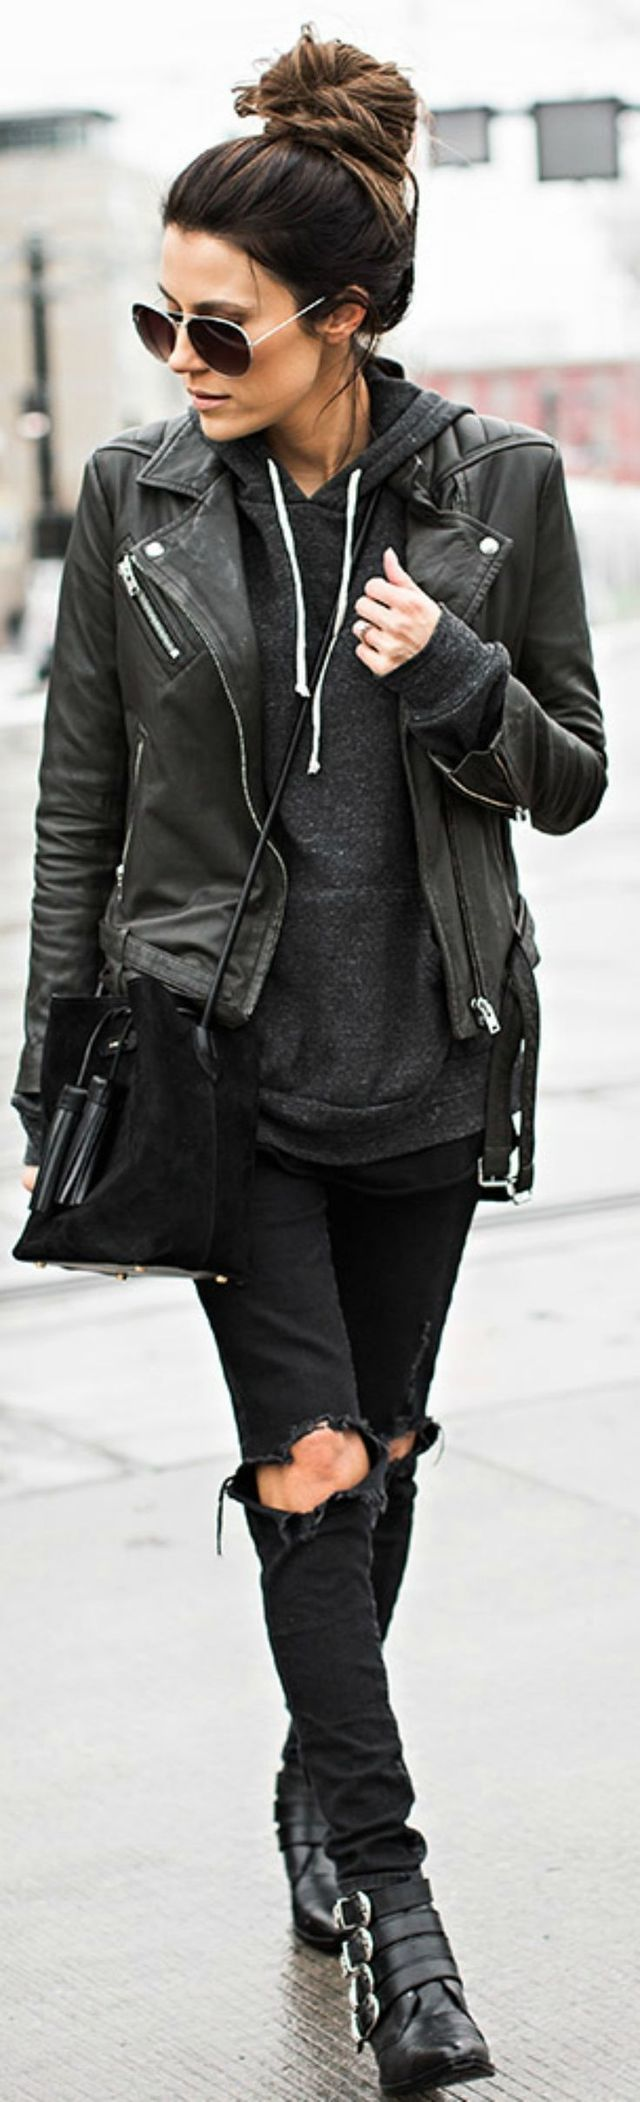 Rock n roll style grunge fashion weekend style work day outfit black  leather jacket distressed ripped black jeans all black everything d8b4e9d3fc